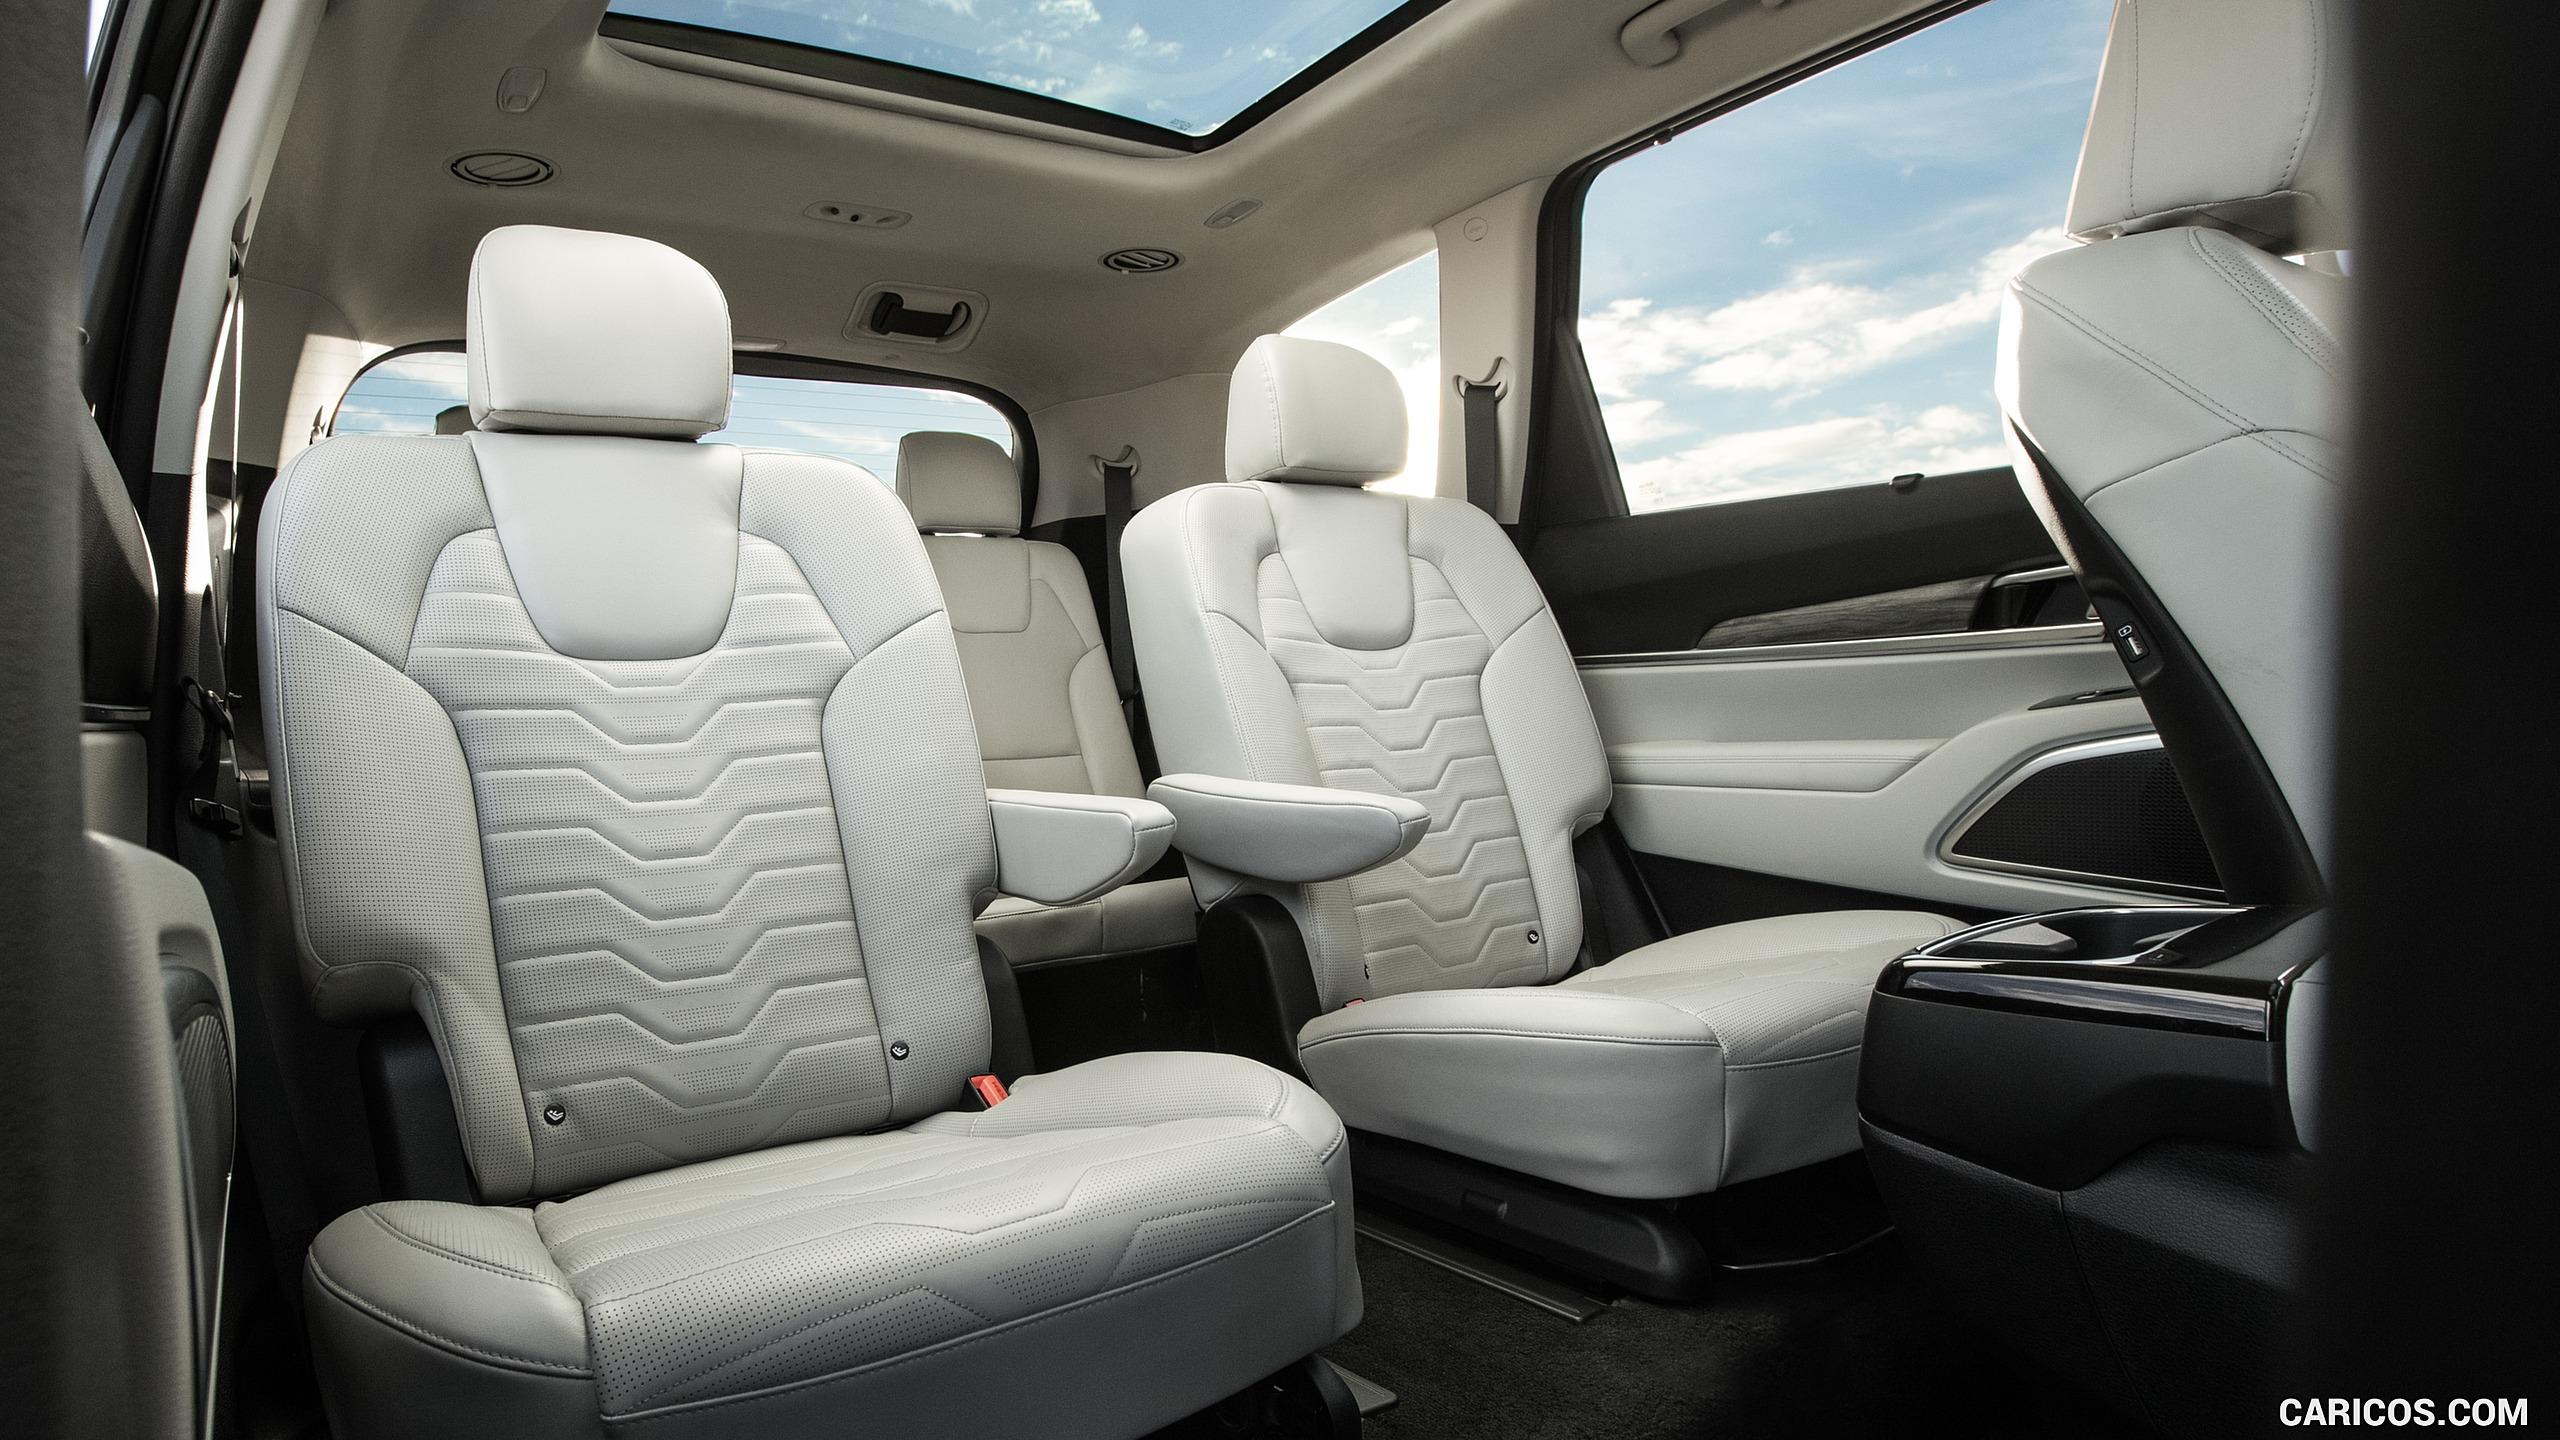 2020 Kia Telluride   Interior Rear Seats HD Wallpaper 11 2560x1440